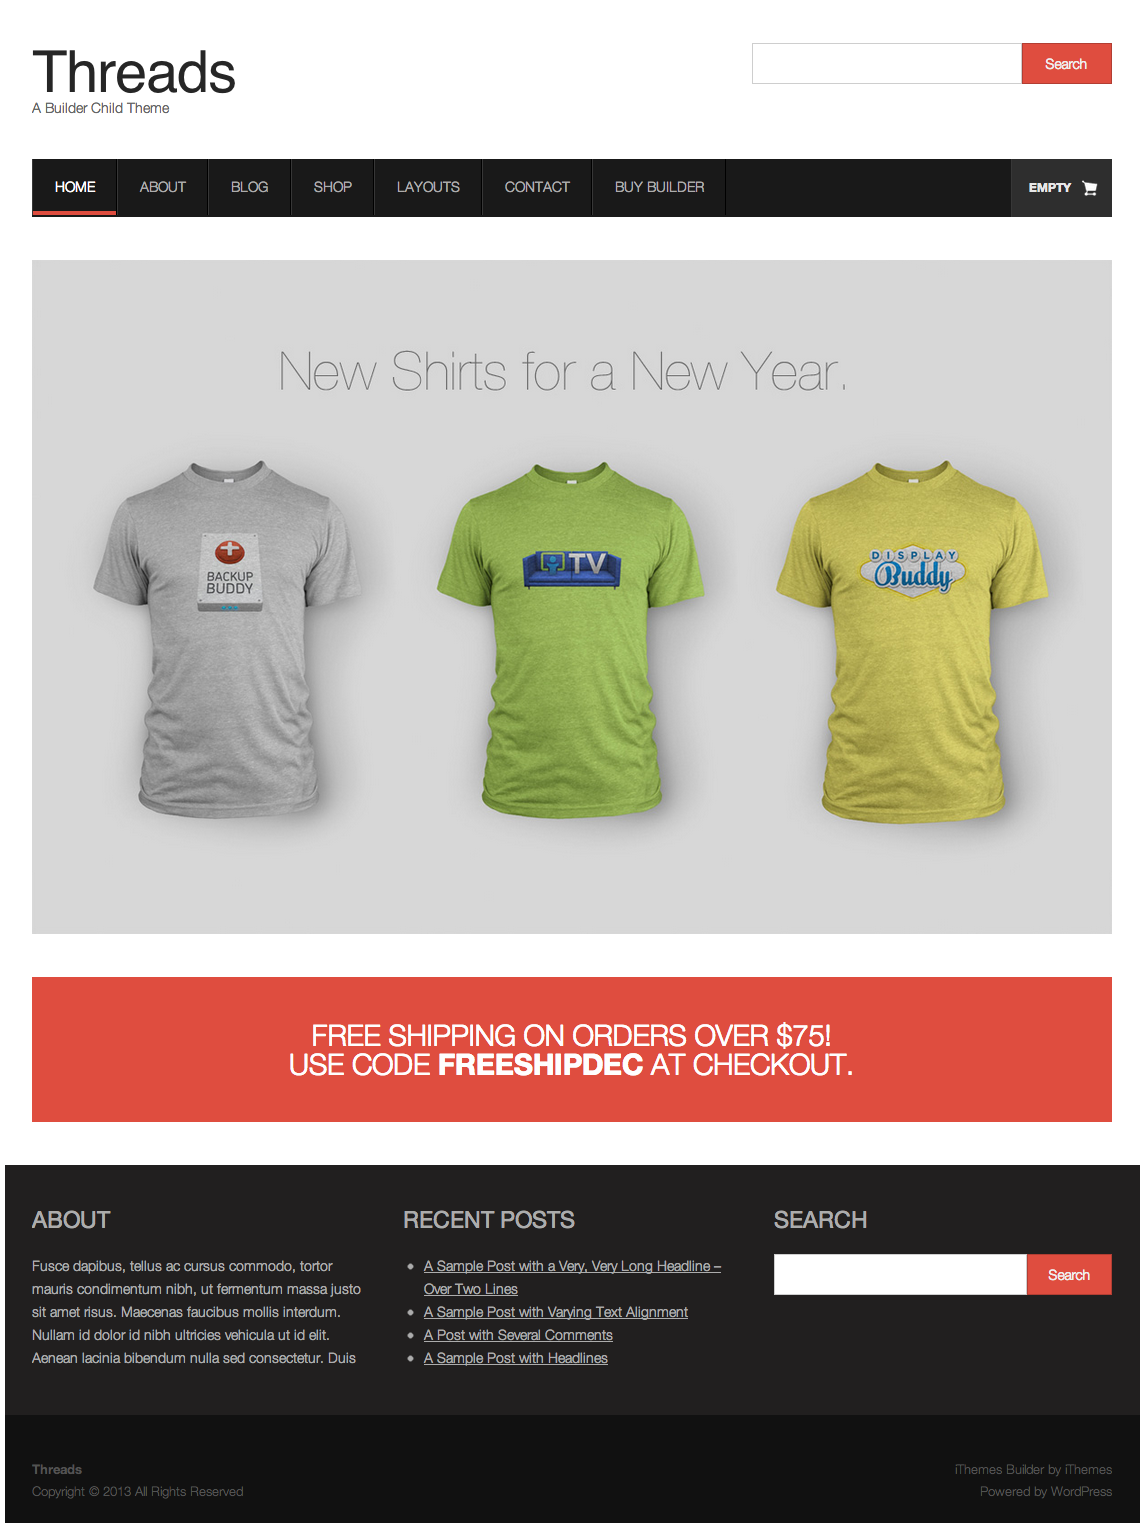 Shirt design wordpress plugin - Threads Is Designed To Integrate Exclusively With Shopp Our Favorite Ecommerce Plugin For Wordpress We Really Wanted To Highlight All Of The Great